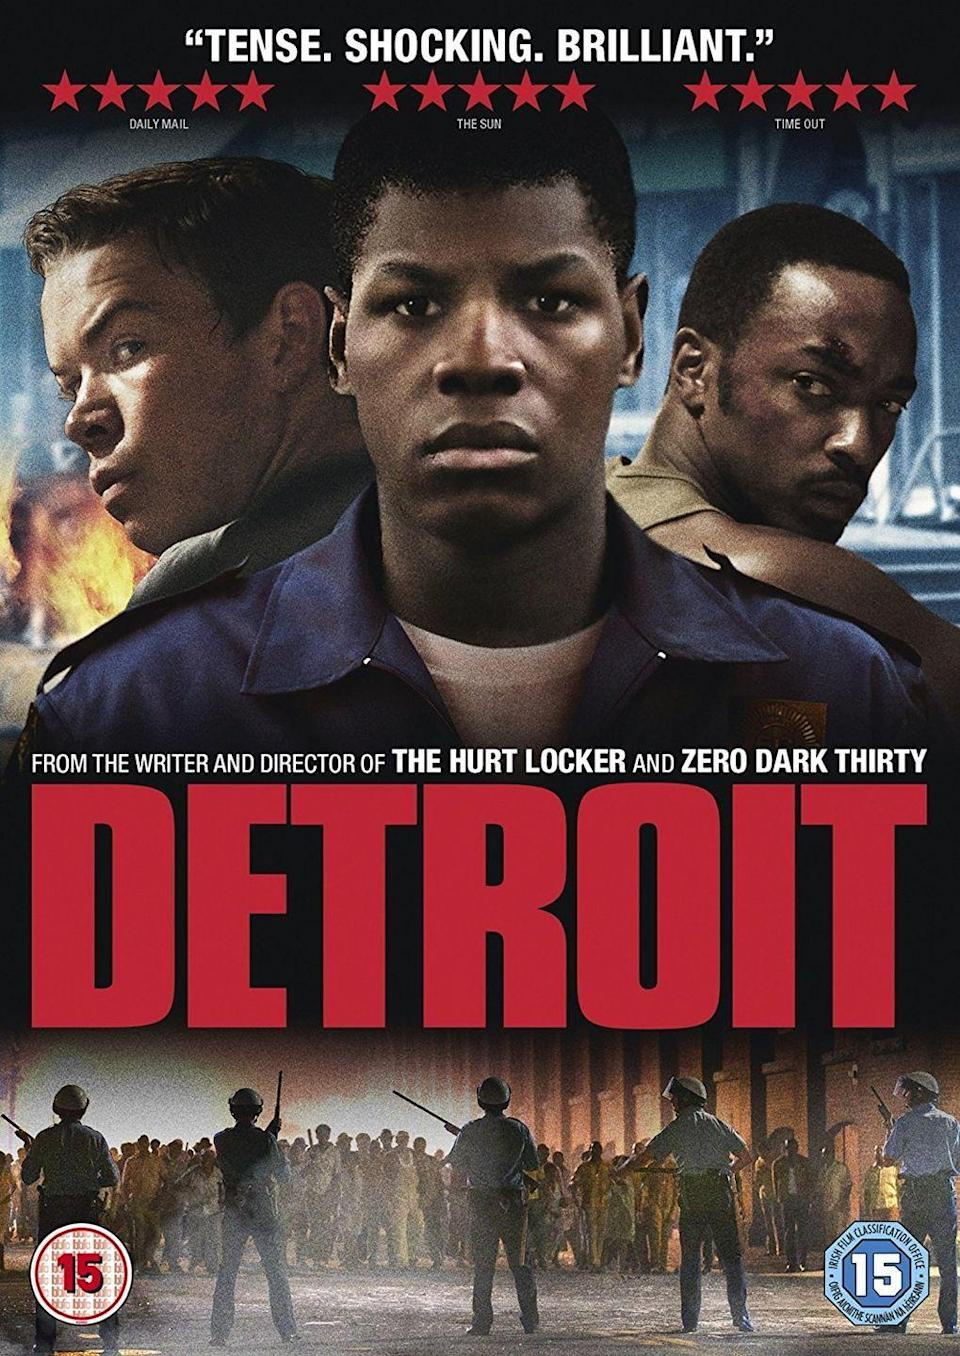 """<p><a class=""""link rapid-noclick-resp"""" href=""""https://go.redirectingat.com?id=74968X1596630&url=https%3A%2F%2Fwww.hulu.com%2Fmovie%2Fdetroit-3f4dbeaf-8976-45b1-993b-2b3626216324&sref=https%3A%2F%2Fwww.womansday.com%2Flife%2Fentertainment%2Fg34963316%2Fblack-history-movies%2F"""" rel=""""nofollow noopener"""" target=""""_blank"""" data-ylk=""""slk:STREAM NOW"""">STREAM NOW</a></p><p>Based on Detroit's 1967 12th Street Riot, this biographic drama follows the events of the five-day riot that consumed the city and claimed several lives, mainly due to confrontations between Detroit's Black residents and the Detroit Police Department.</p>"""